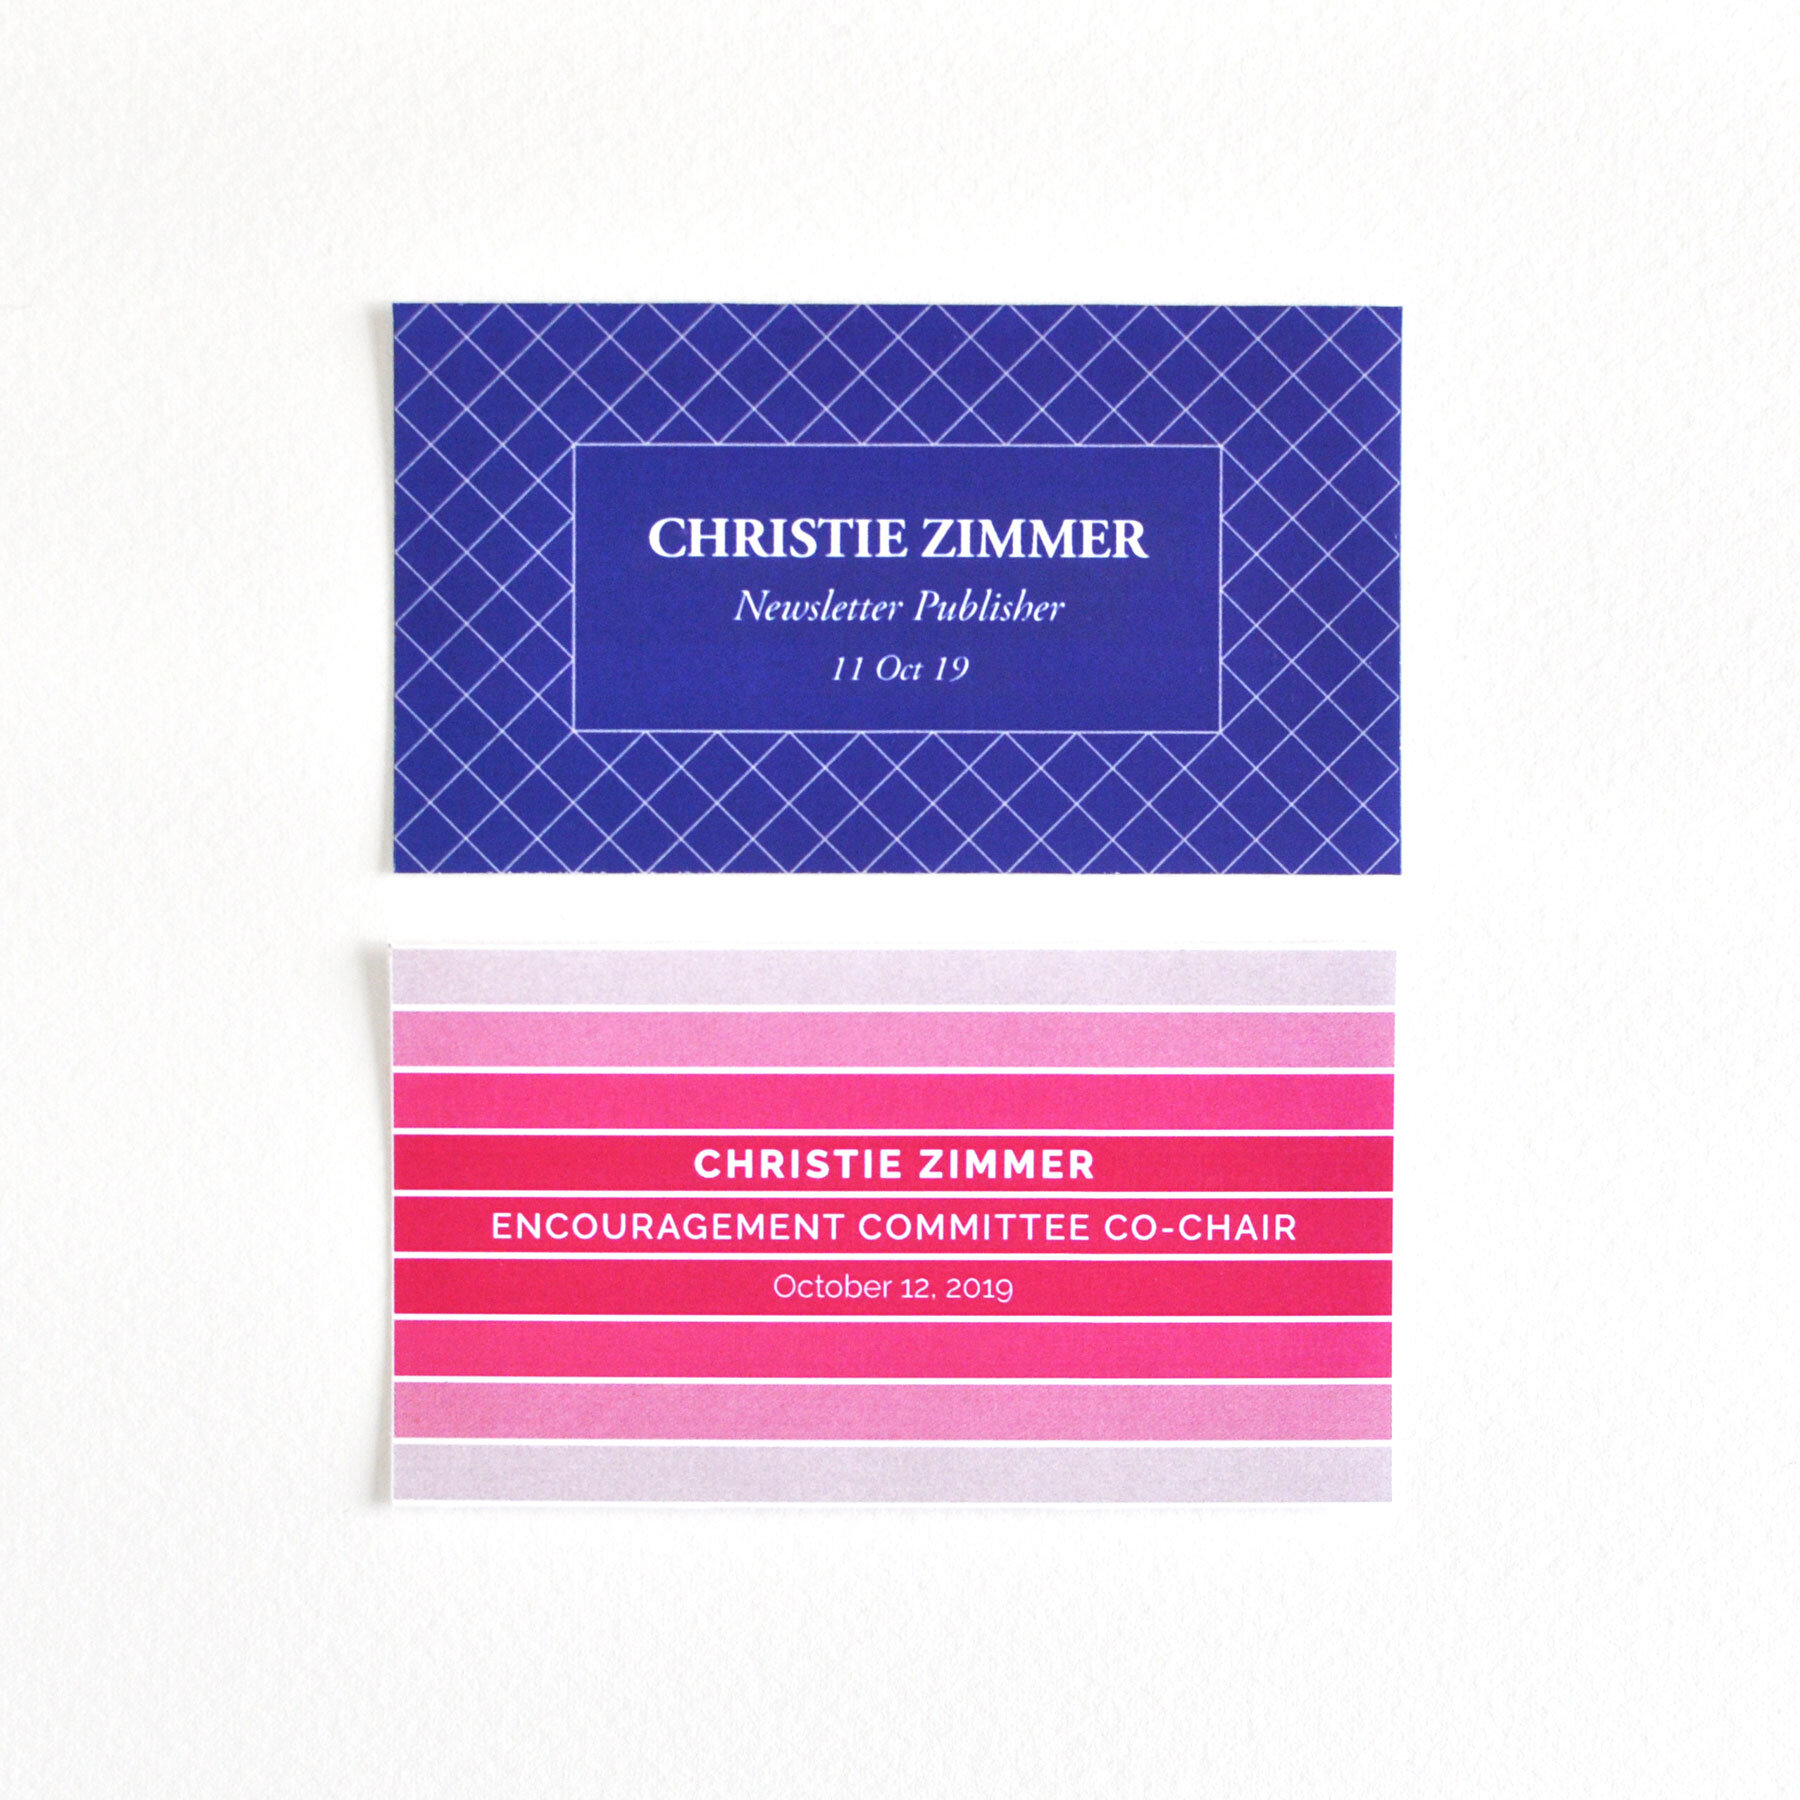 14-10-2019-Daily-Business-Cards-by-Christie-Zimmer.jpg